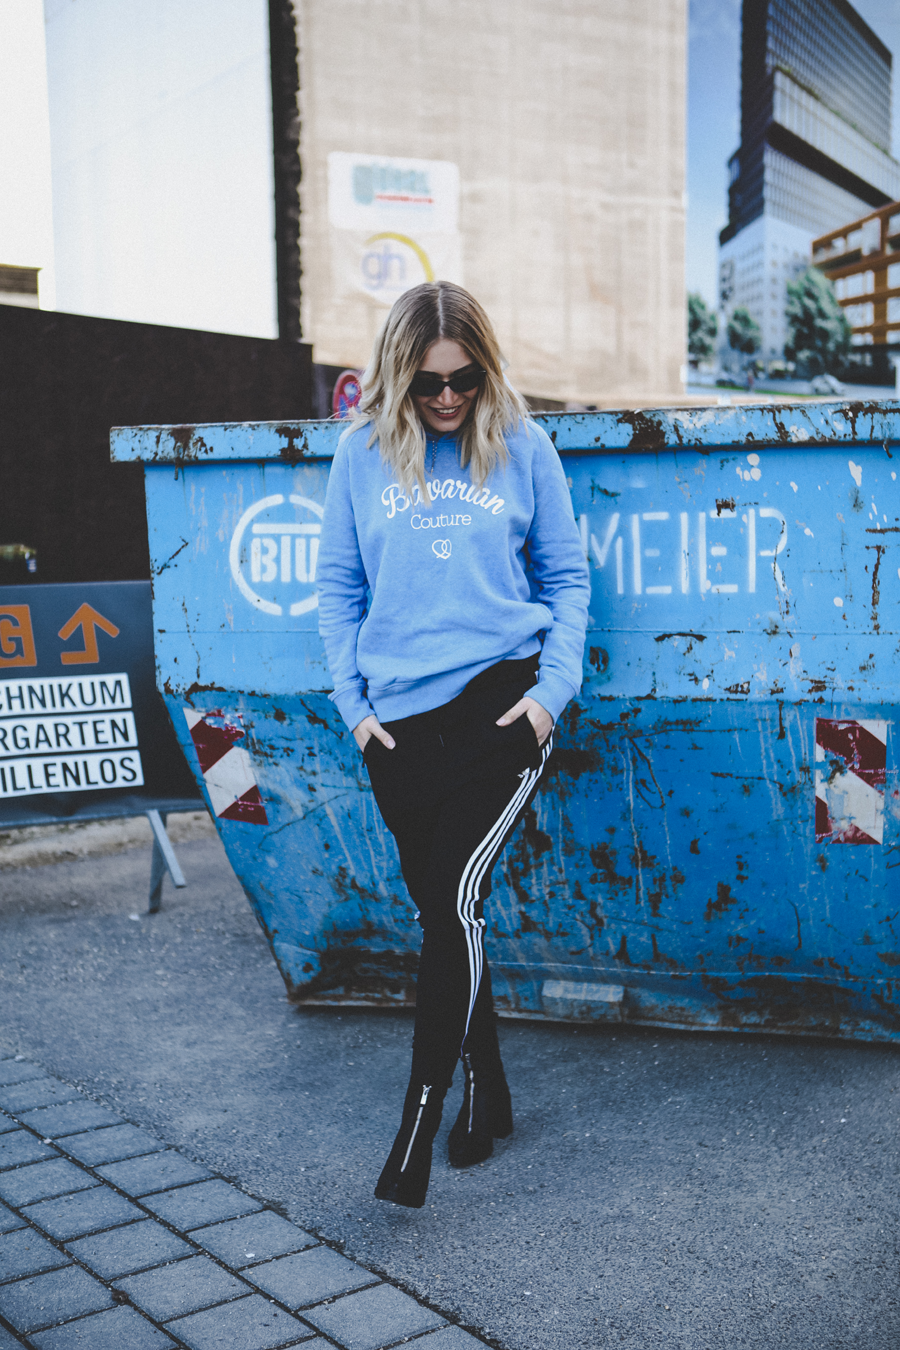 lauralamode-blogger-fashion-fashionblogger-modeblogger-blog-bavarian couture-adidas-zara-asos-outfit-outfit of the day-streetstyle-look-muenchen-deutschland